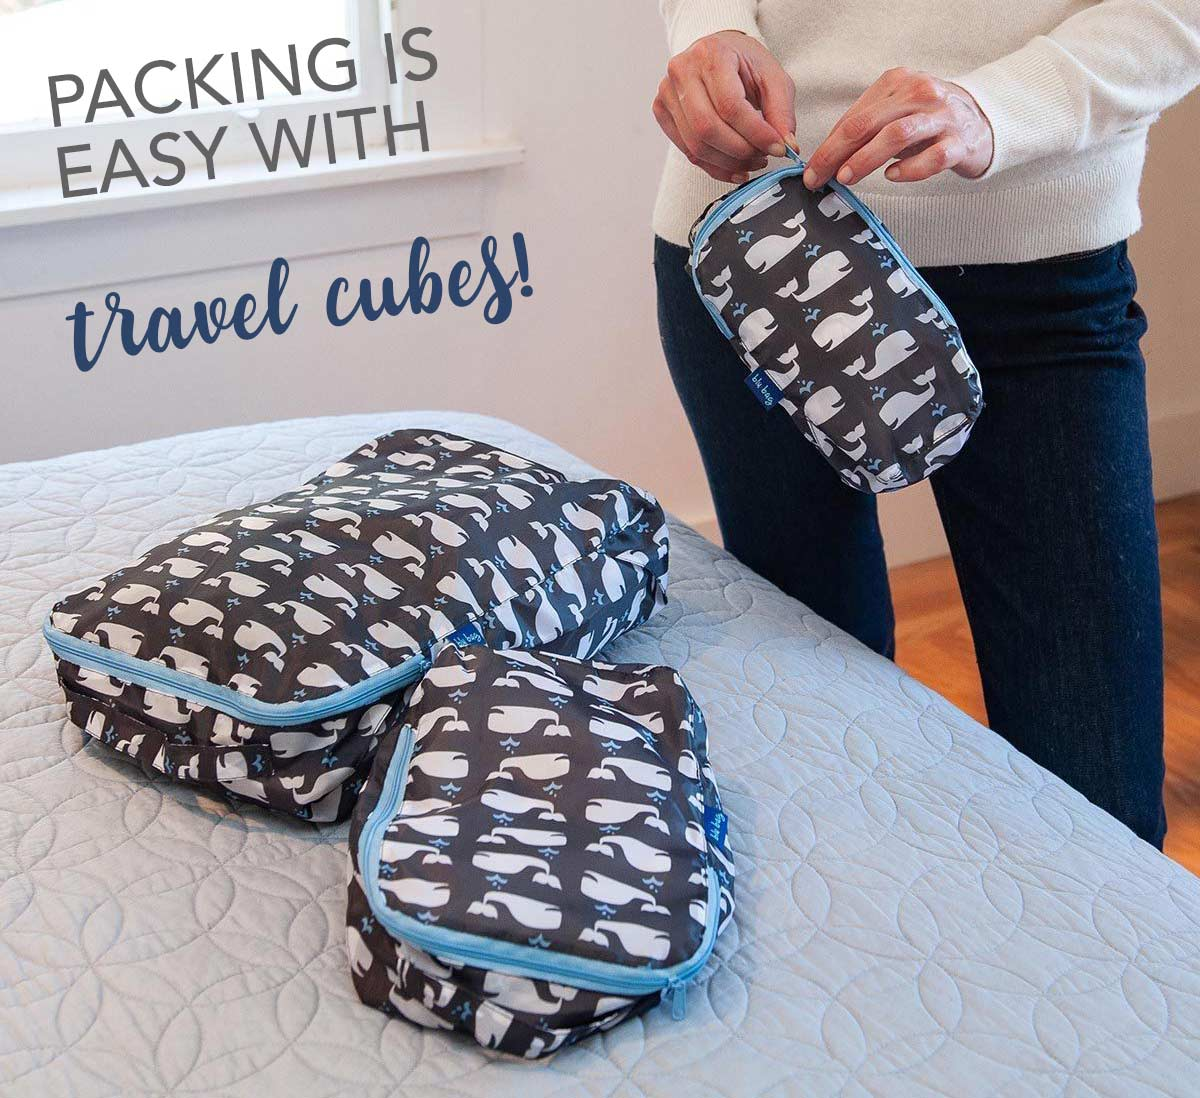 three travel cubes in a whale print make packing easy